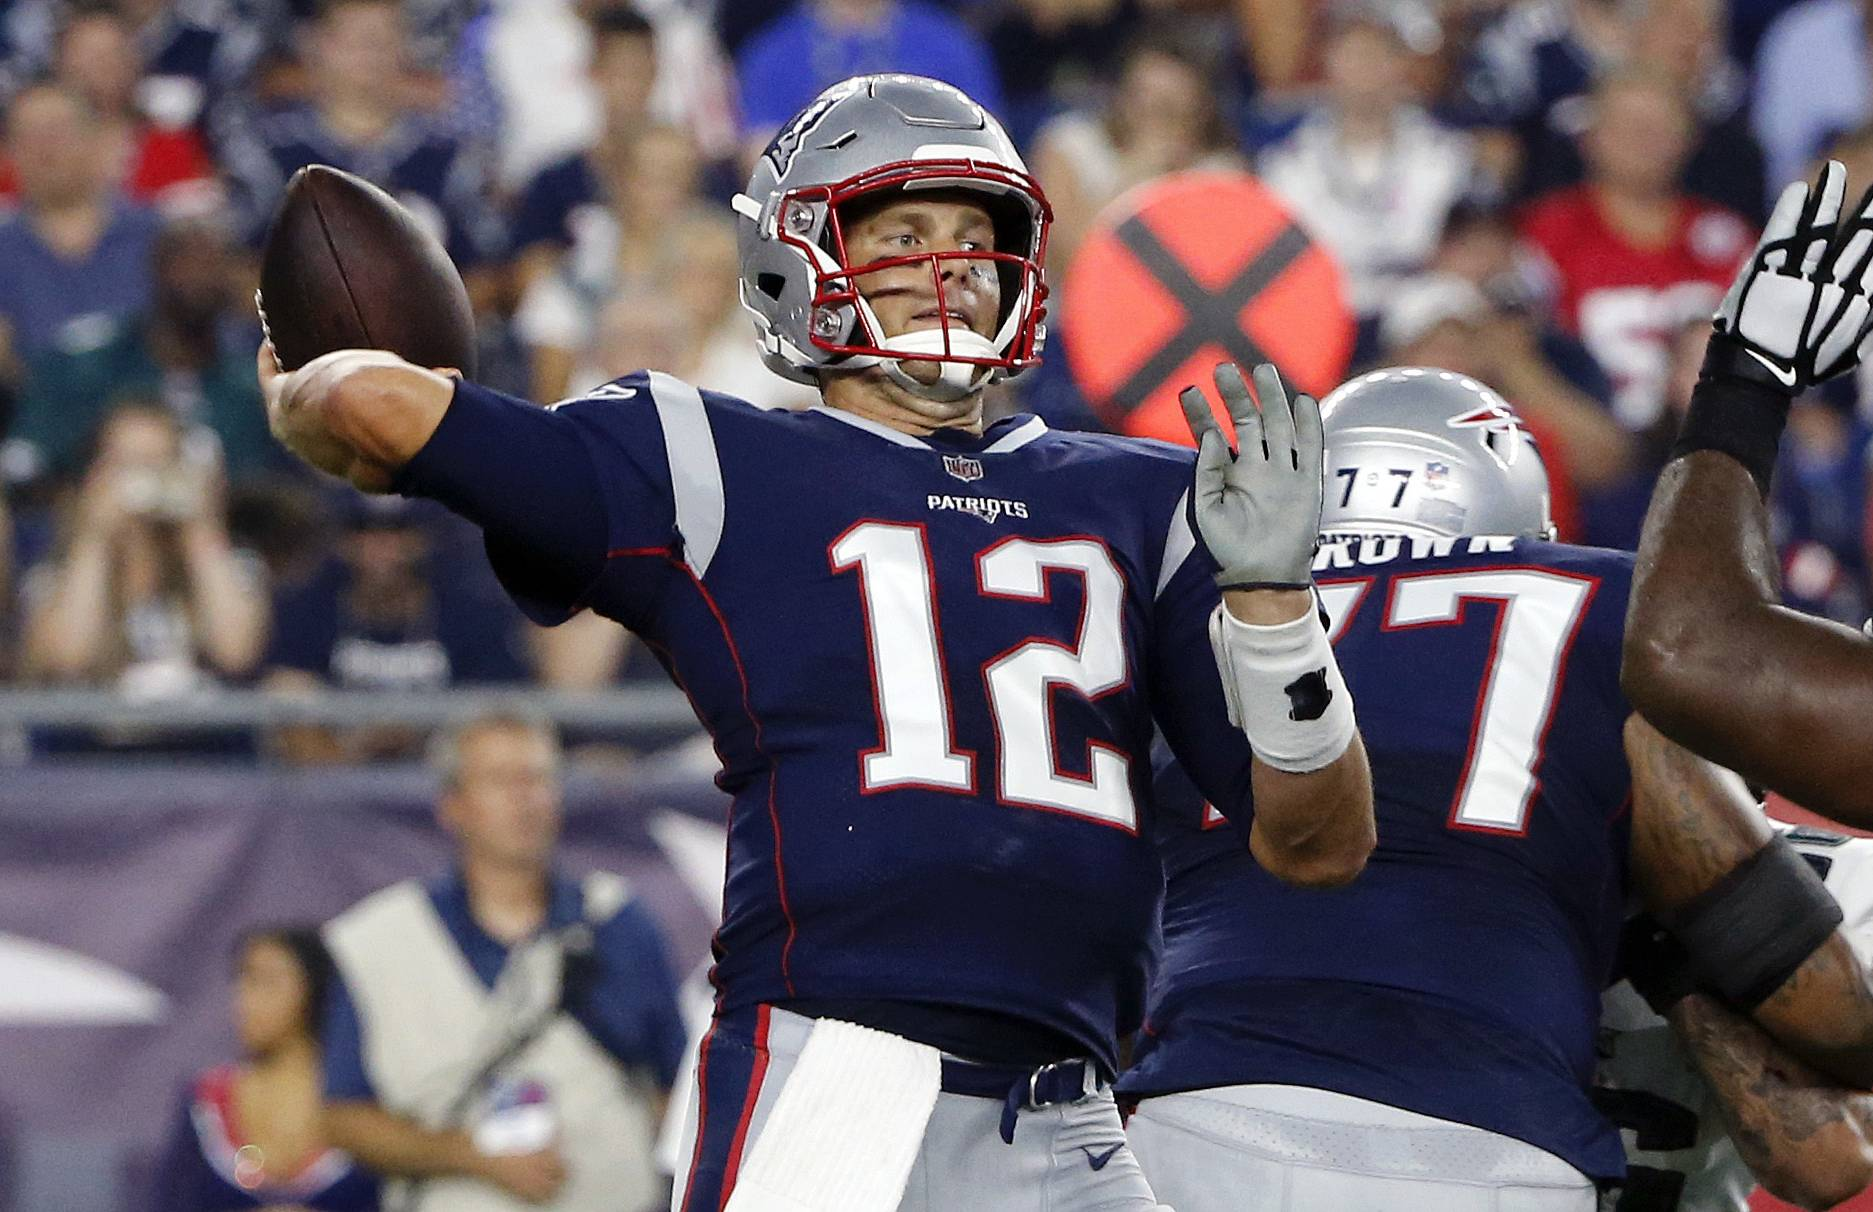 Tom Brady is arguably the greatest quarterback in the history of the NFL. Brady and the Patriots offense will prove to be a tough test for the Bears on Sunday.